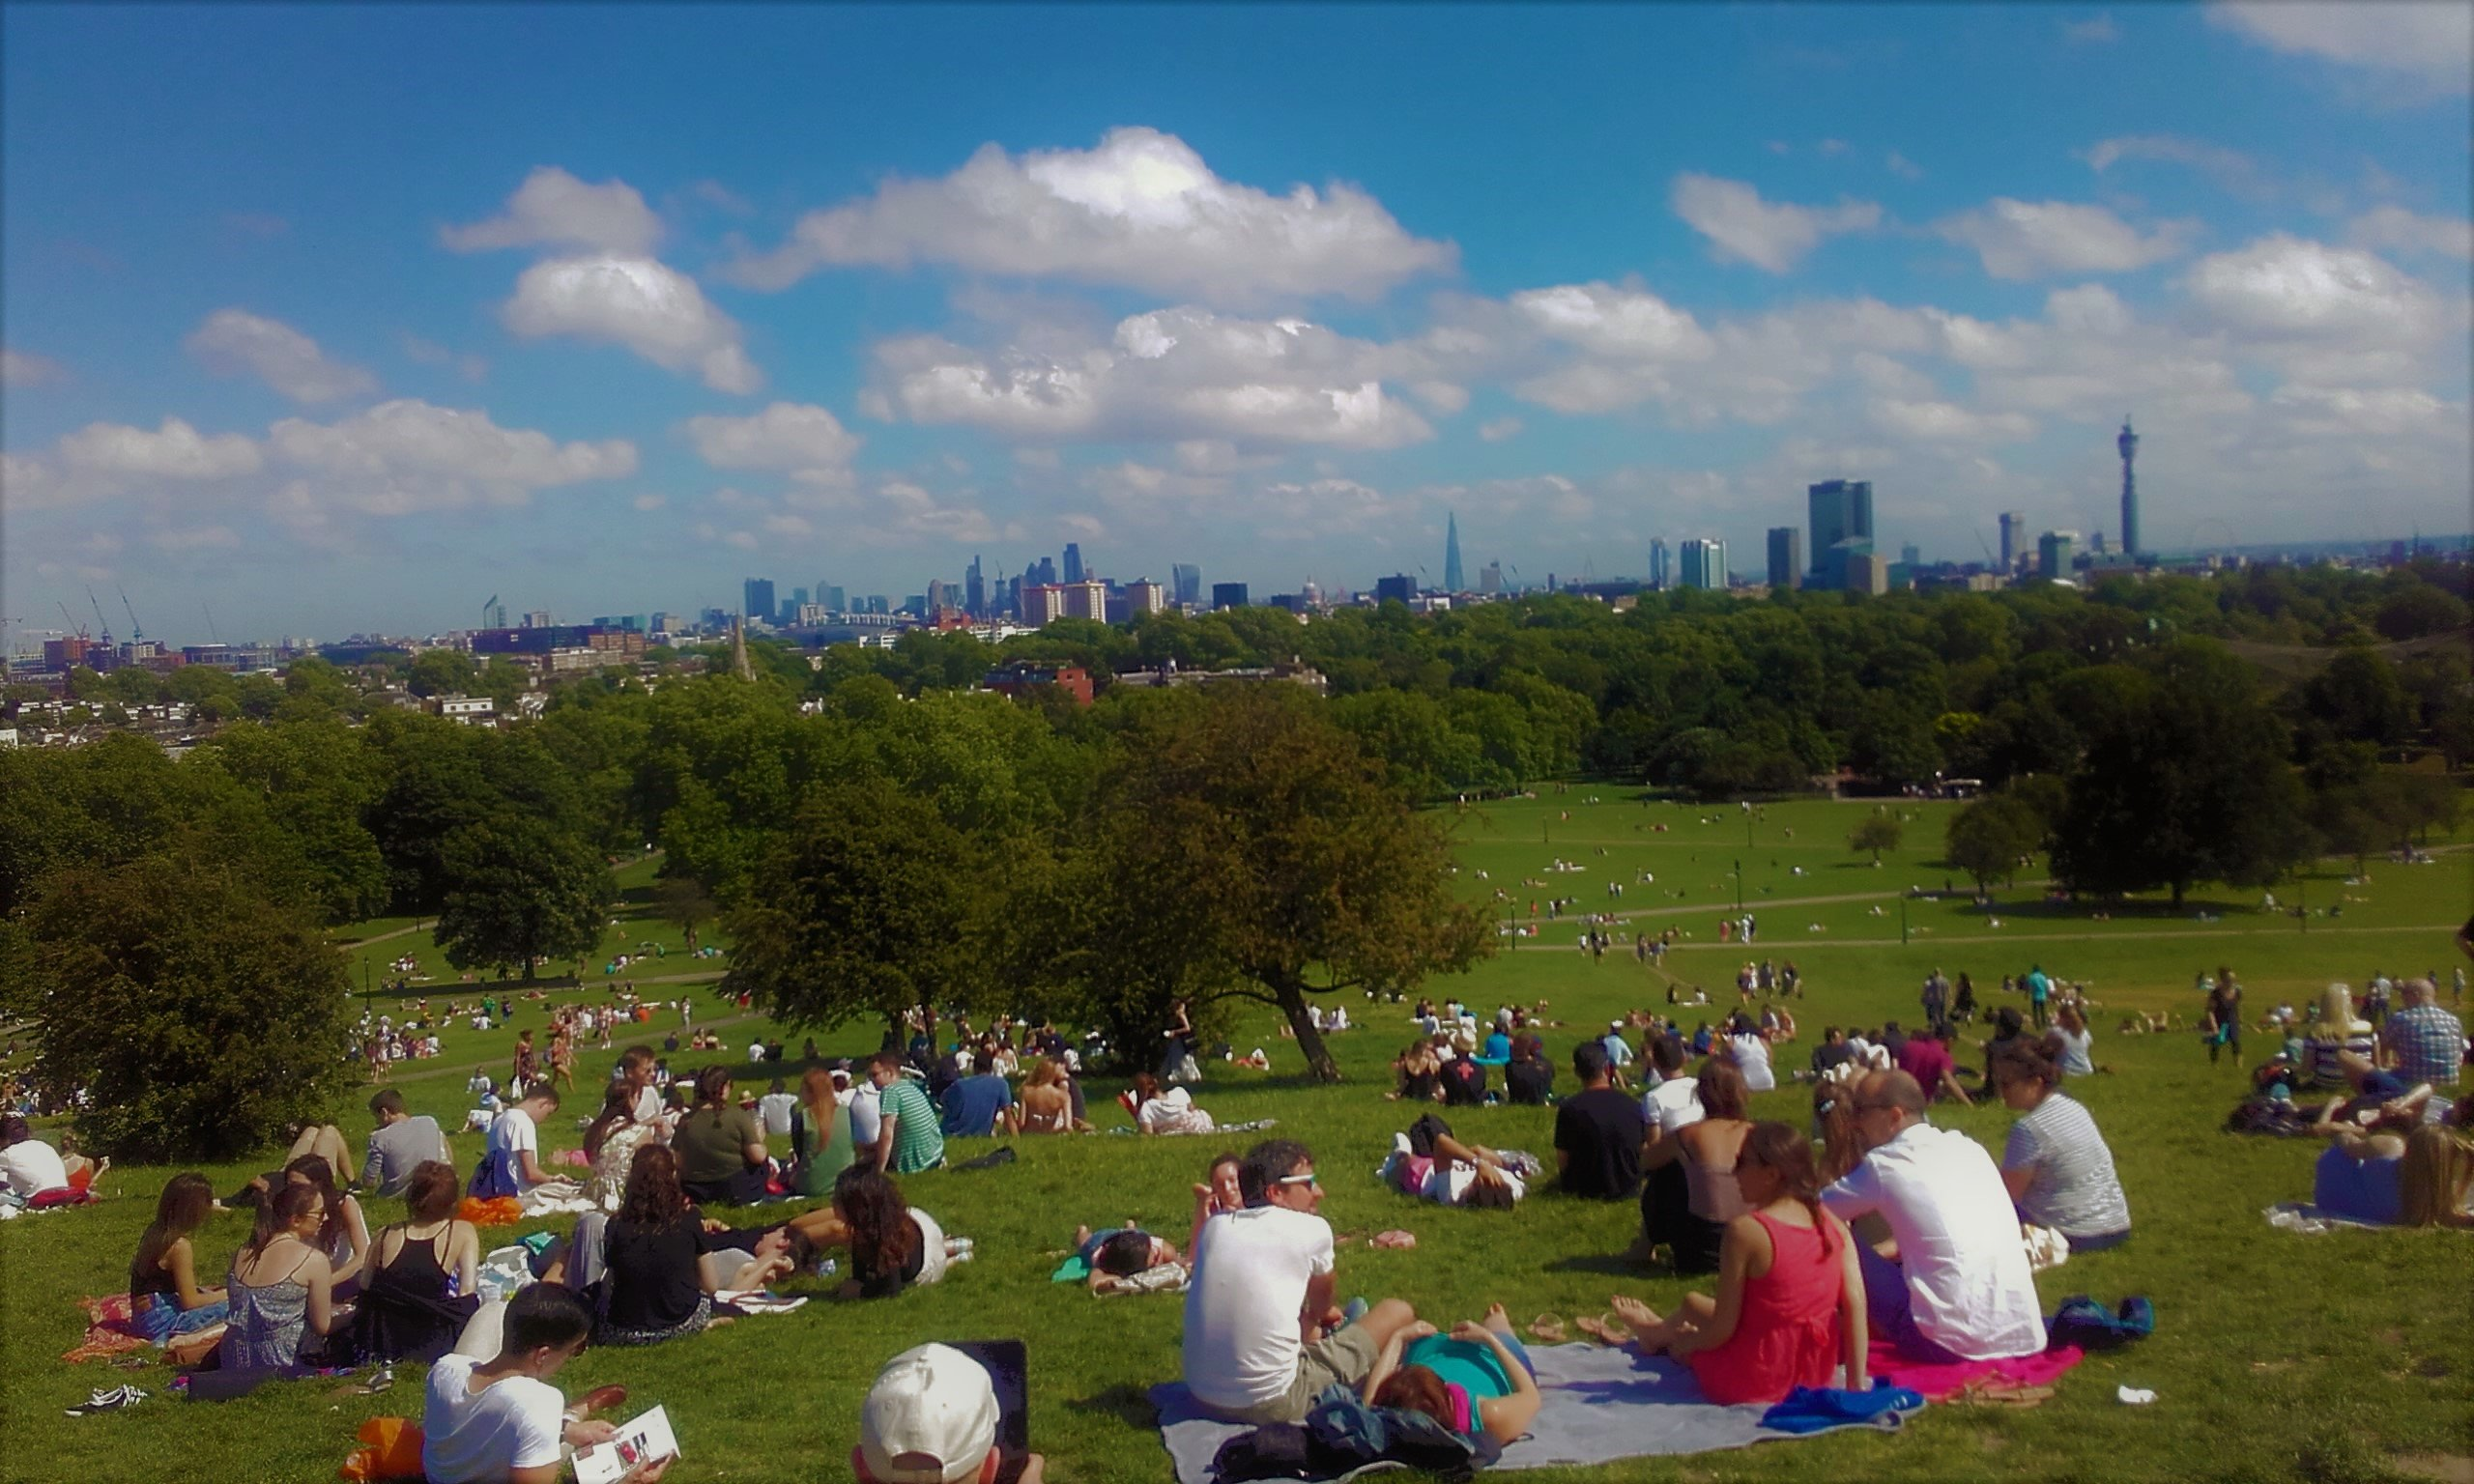 Primrose Hill is a lovely place to gather on a sunny day with great views back over the city!